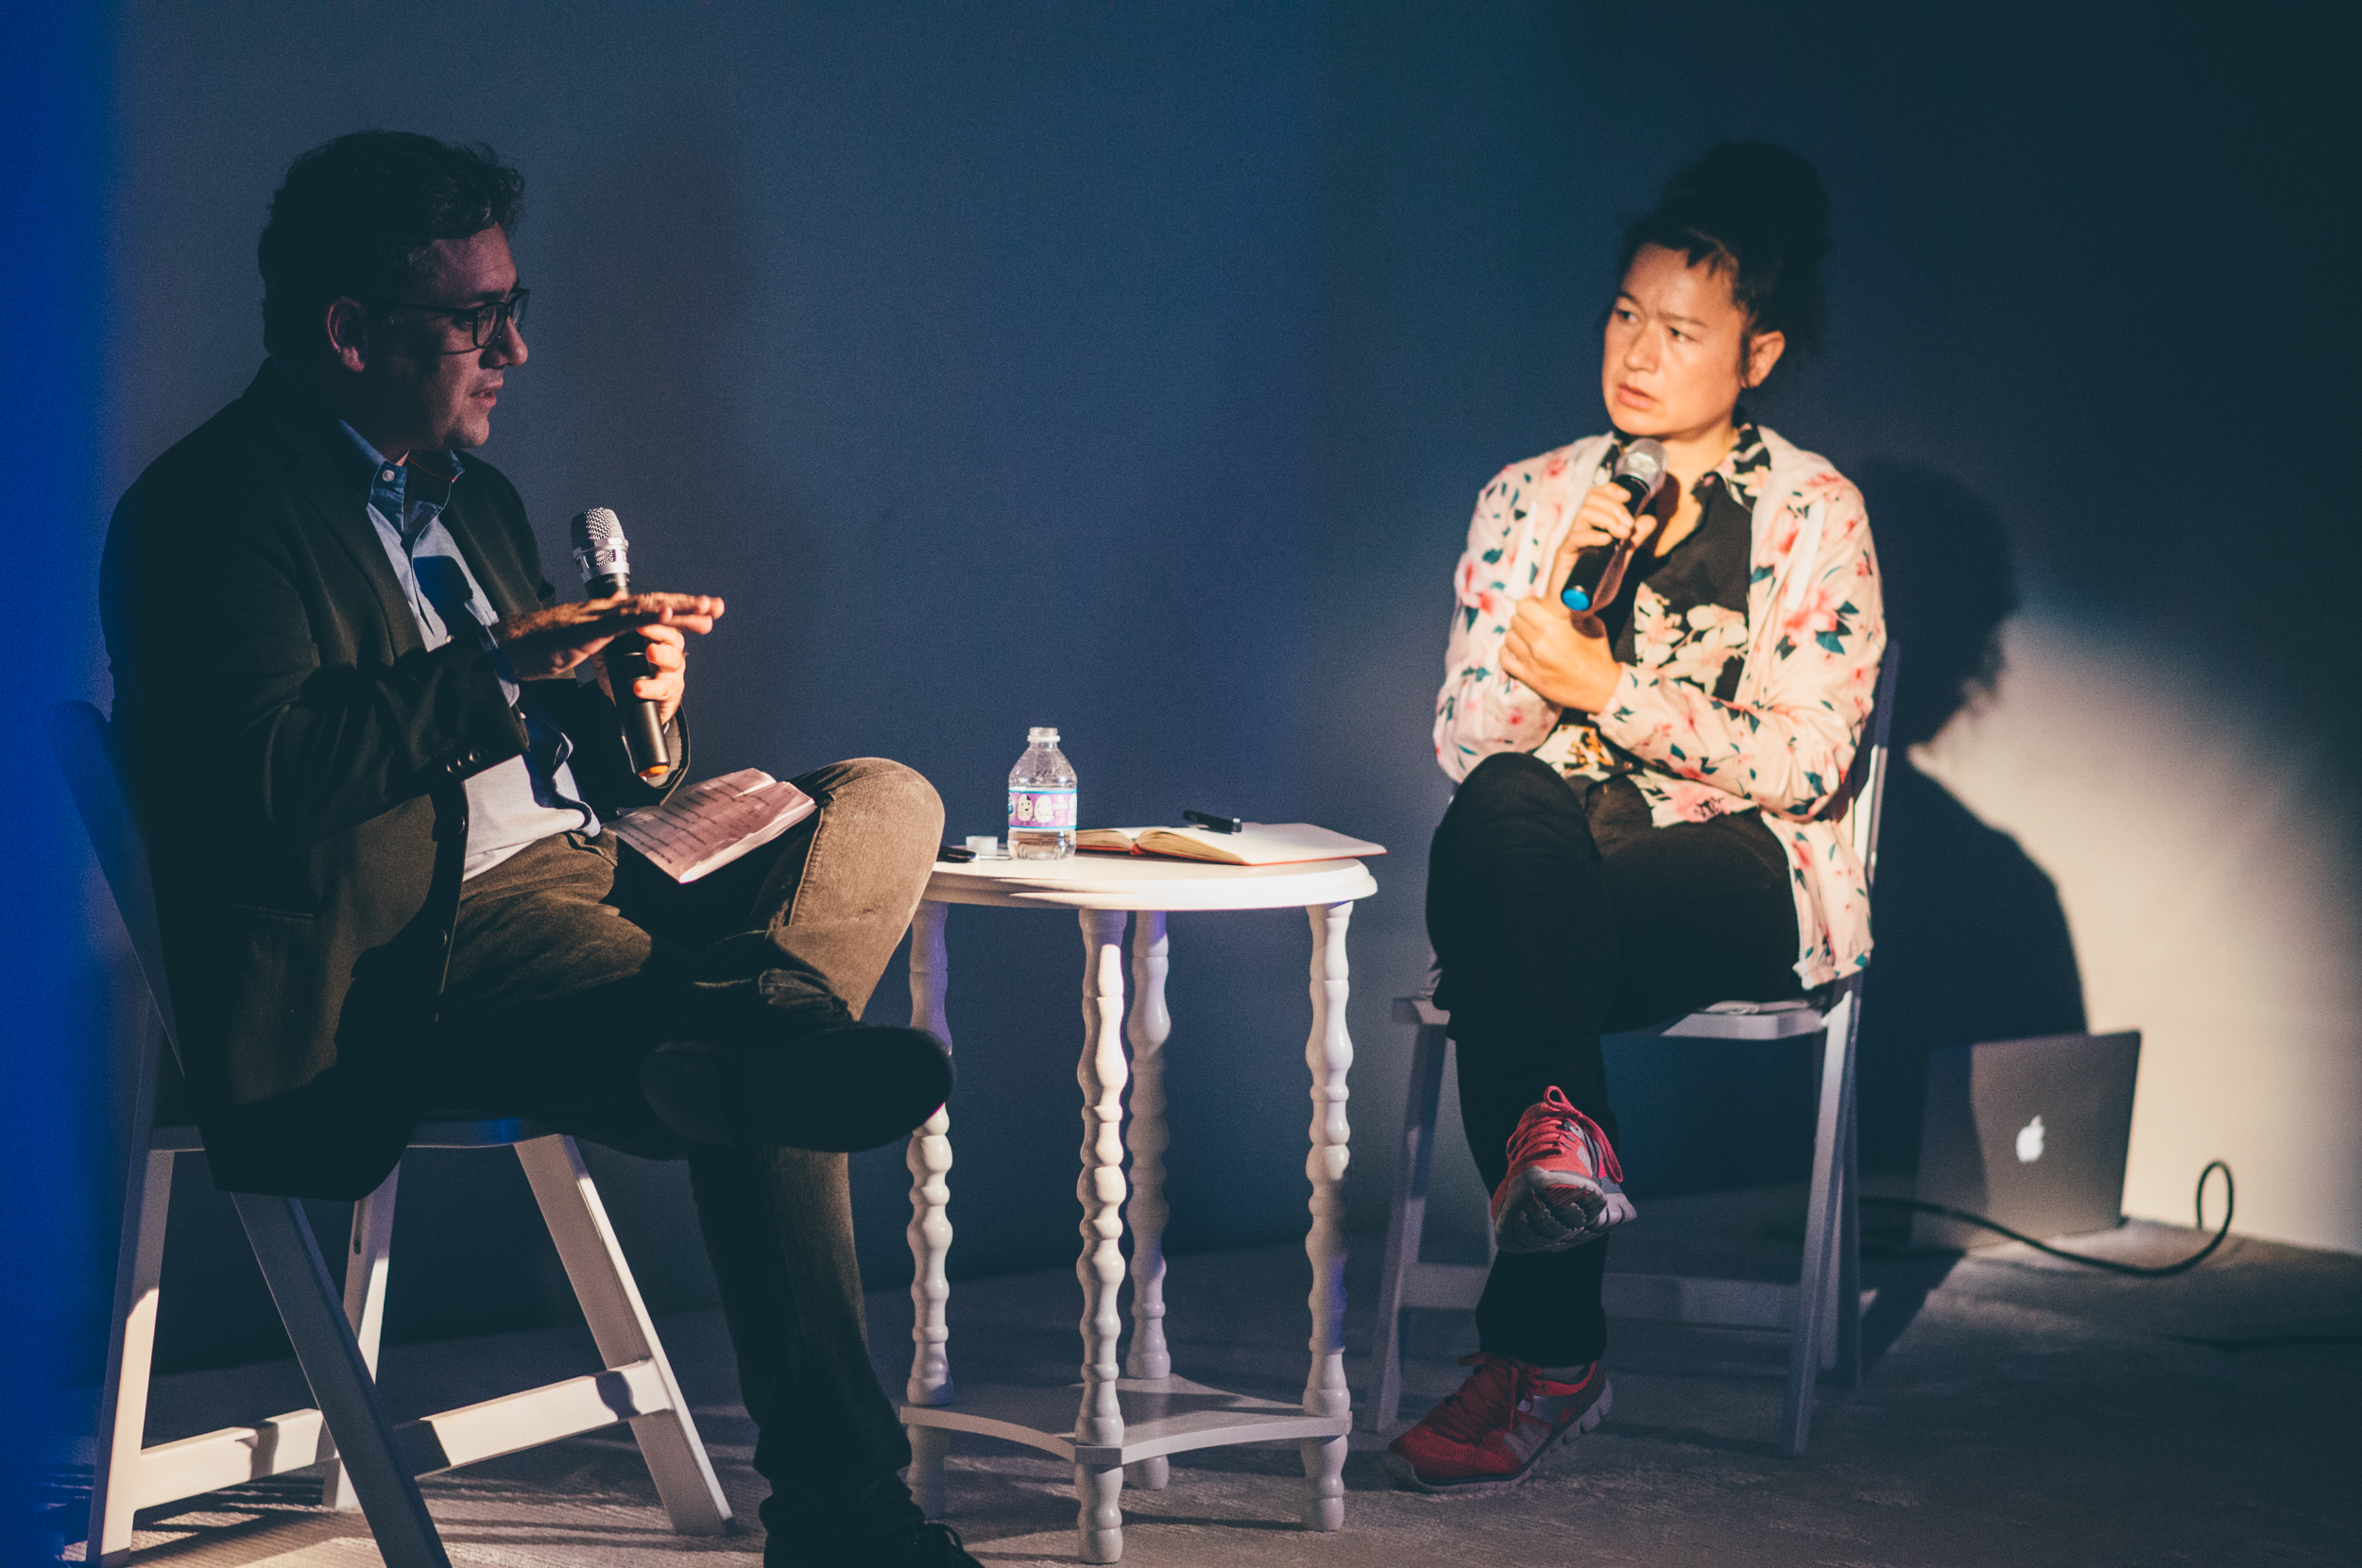 Hito Steyerl at the Art + Research Center, ICA Miami. Photo: Javier Sanchez